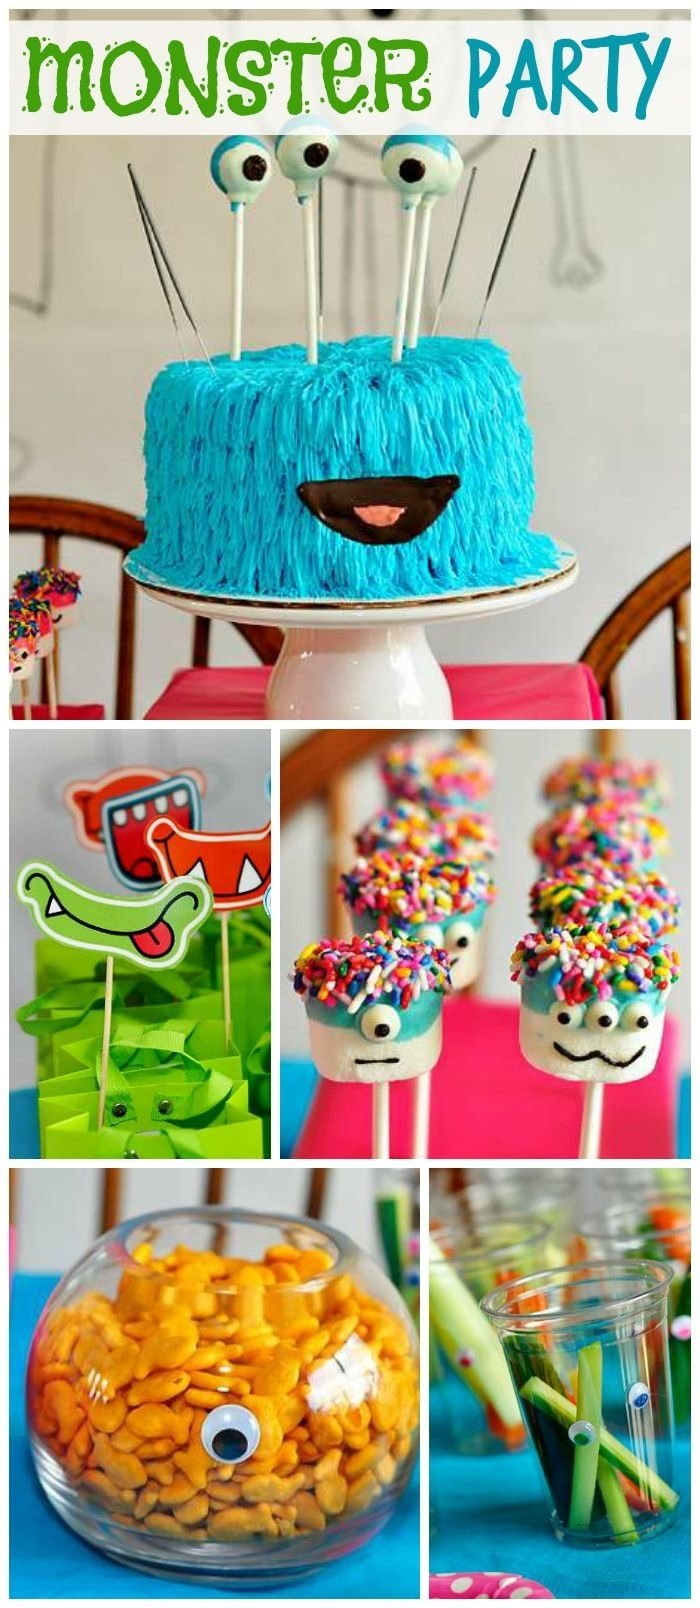 10 Fashionable Fun Party Ideas For Kids 212 best monster party ideas images on pinterest monster party 1 2020